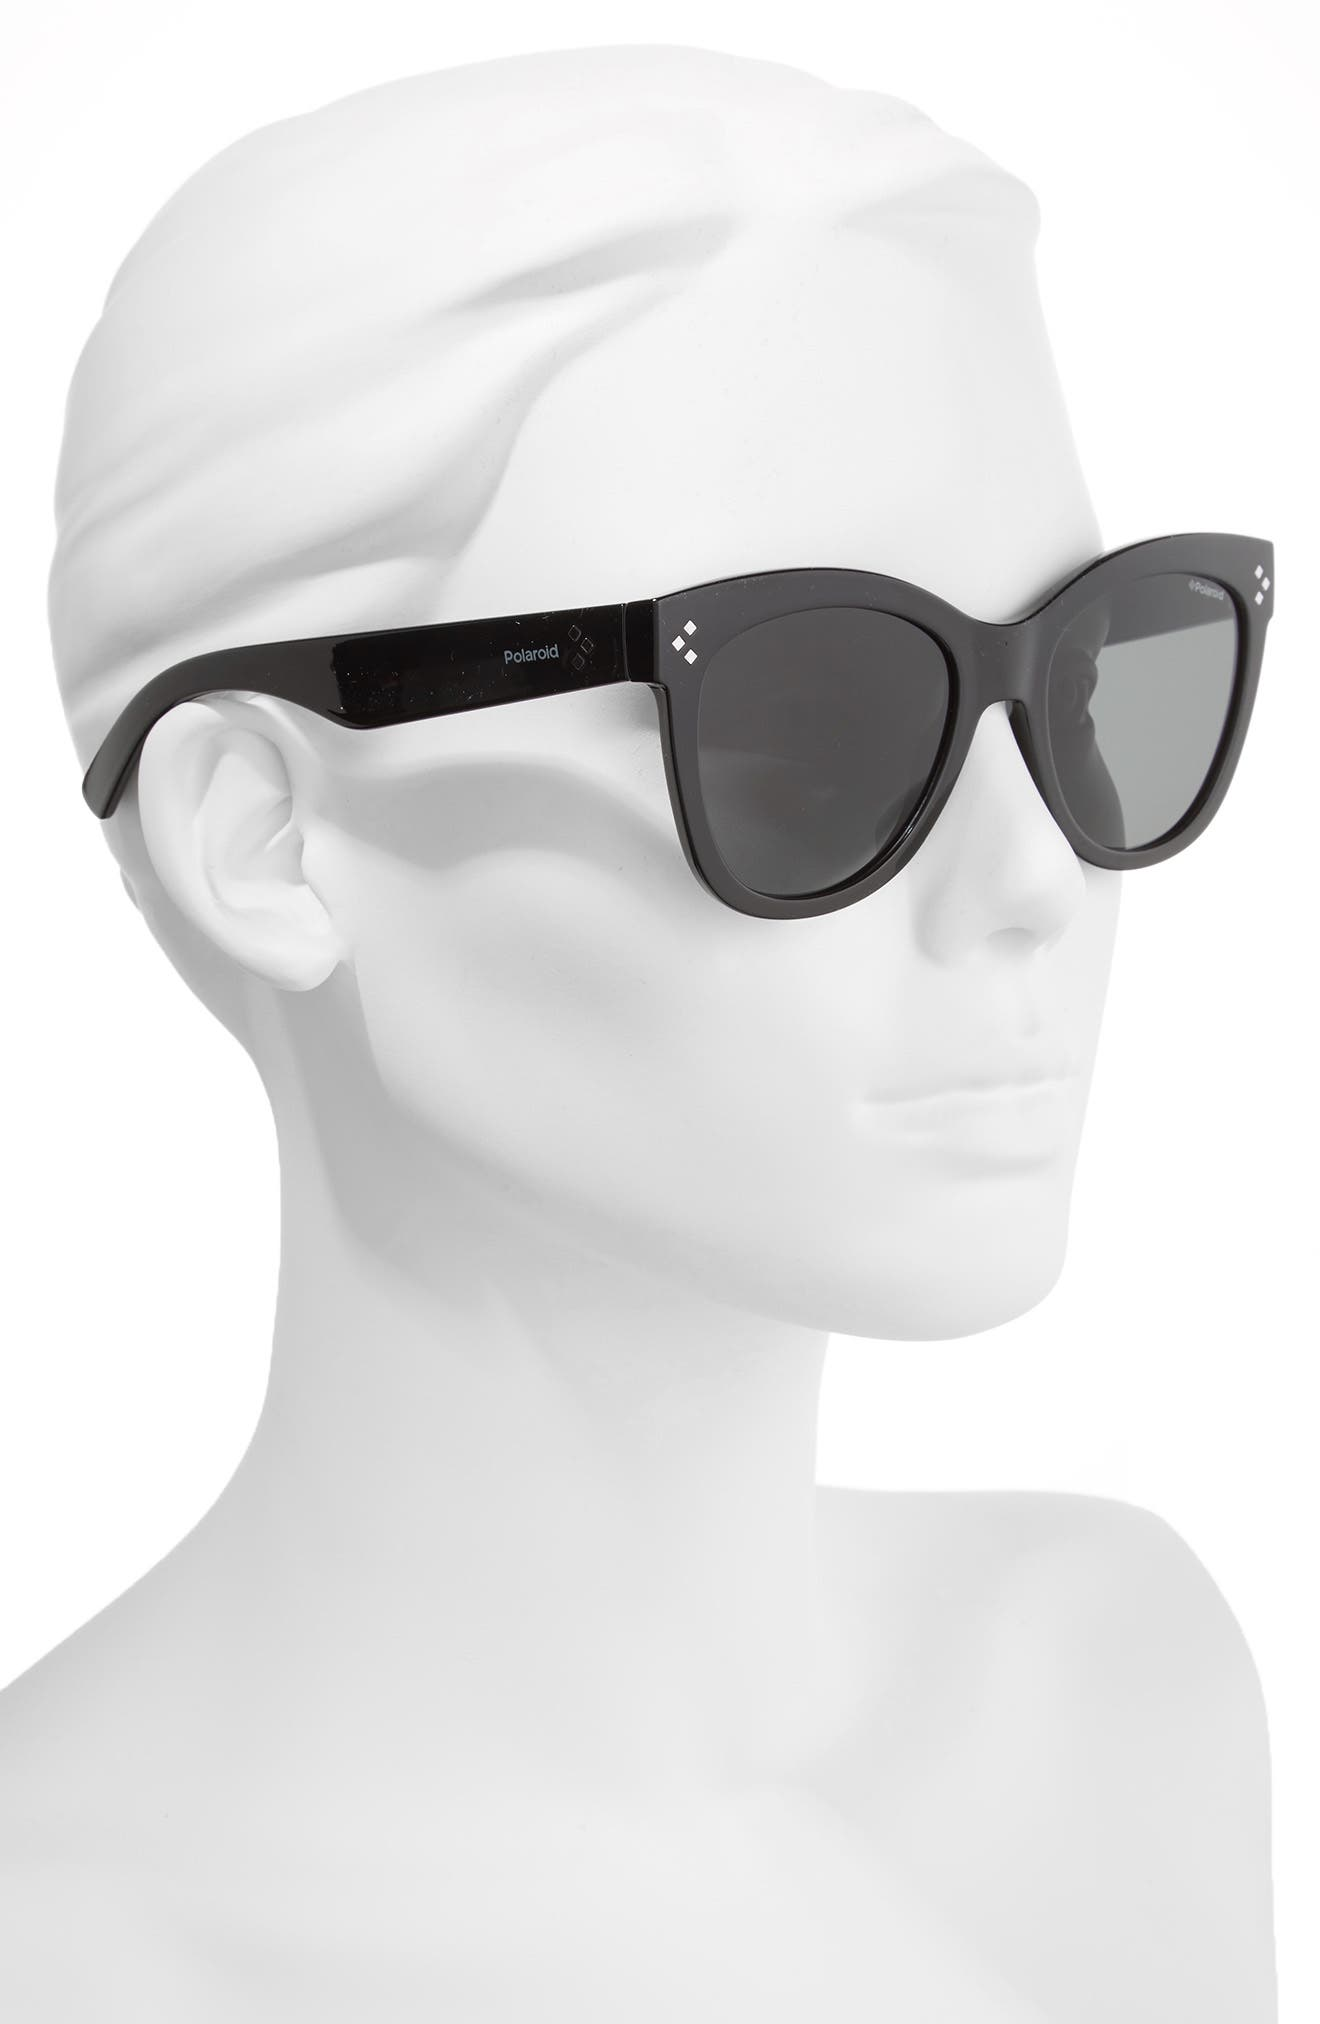 54mm Polarized Sunglasses,                             Alternate thumbnail 2, color,                             SHINY BLACK